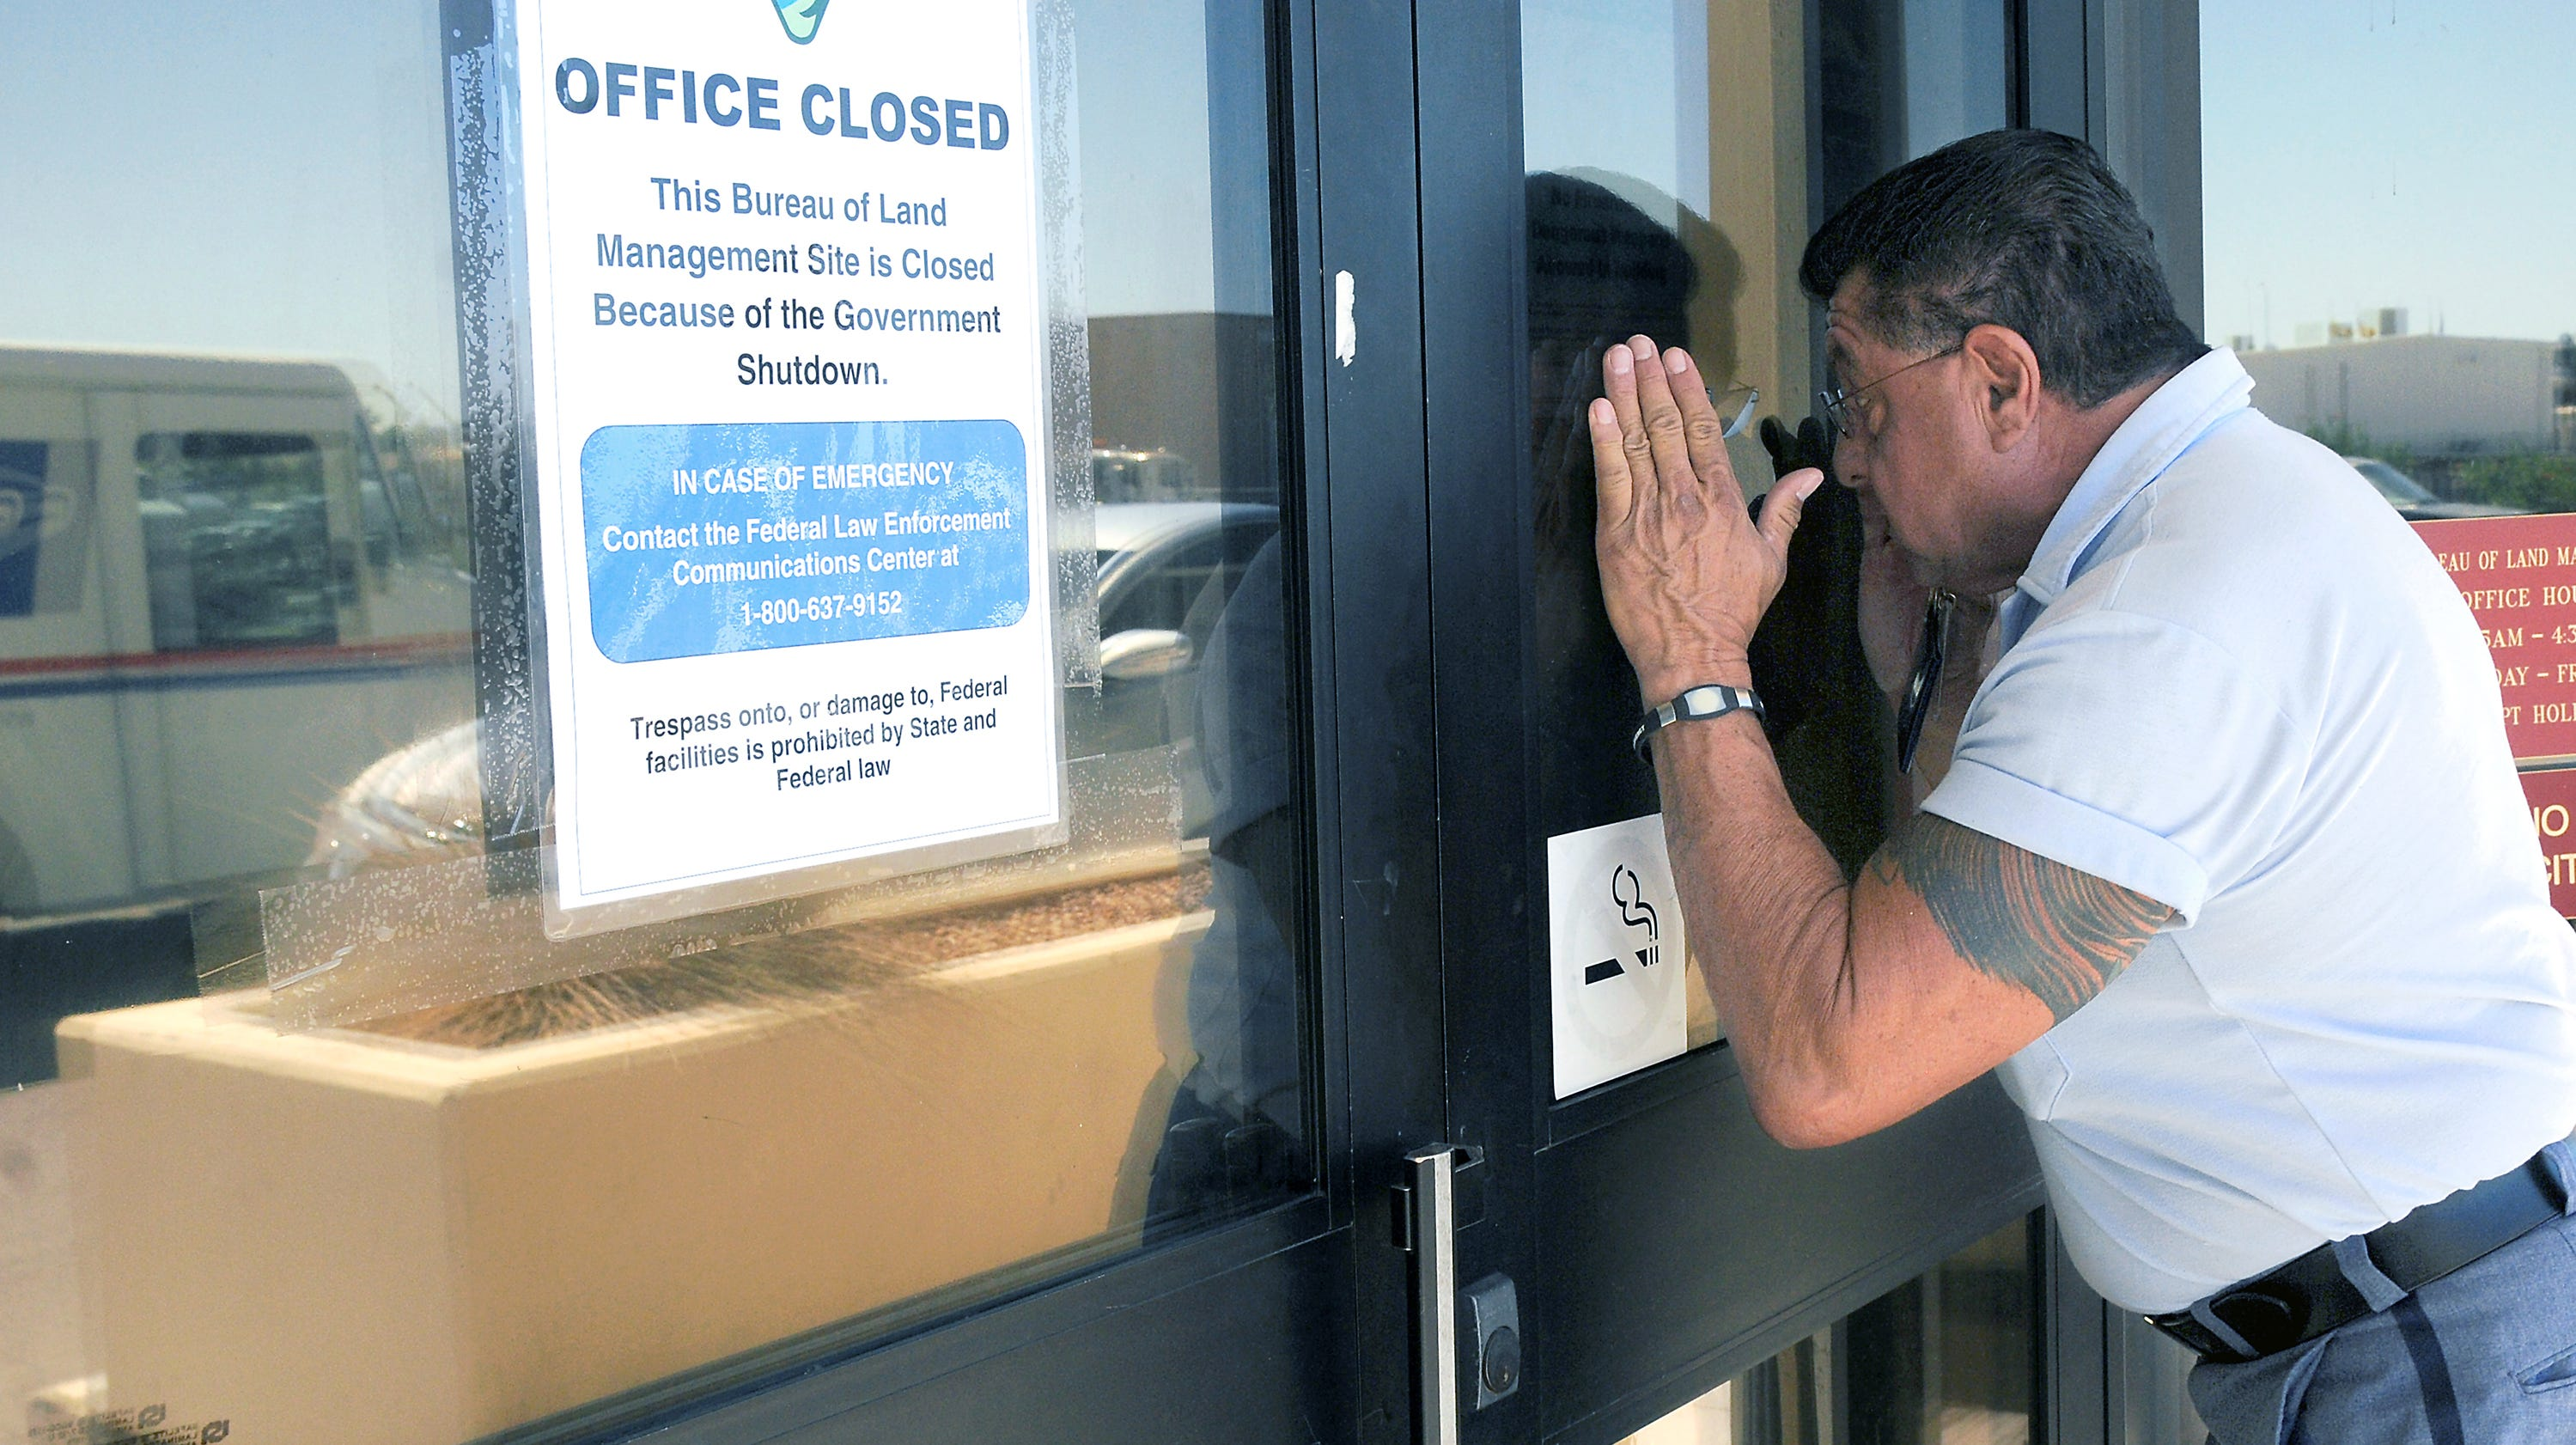 "Letter carrier Jacob Ribald of the U.S. Postal Service peeks Oct. 1, 2013, into the window of the closed Bureau of Land Management office Las Cruces, N.M.  ""I have a lot of mail for them,""  Ribald said. ""At least I tried, right?"" The Postal Service continued deliveries during the government shutdown while other federal agencies were shuttered."